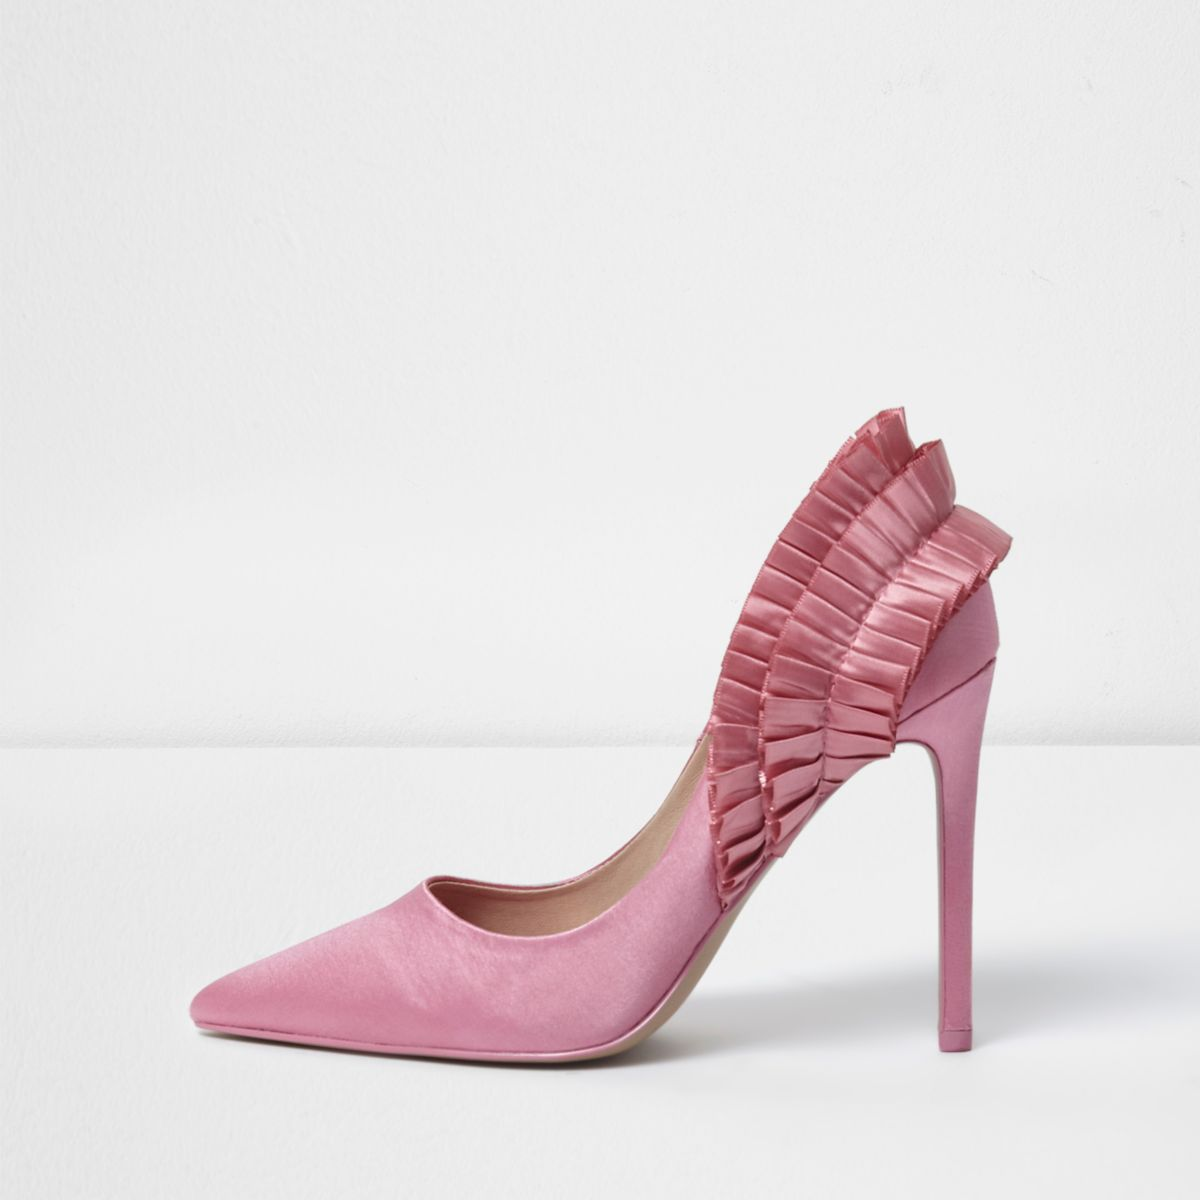 Pink ruffle back pumps